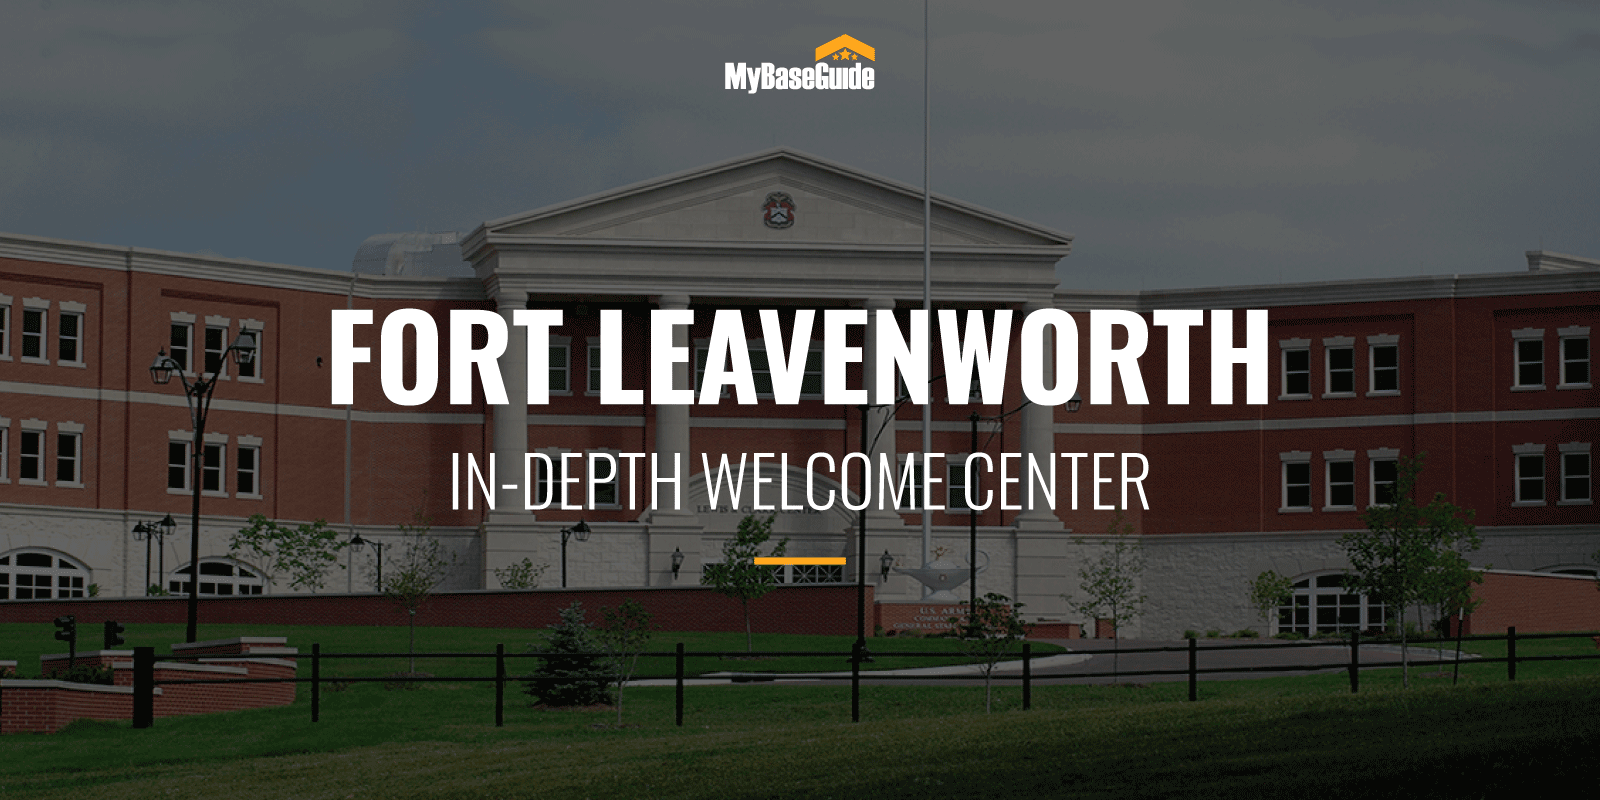 Fort Leavenworth: In-Depth Welcome Center